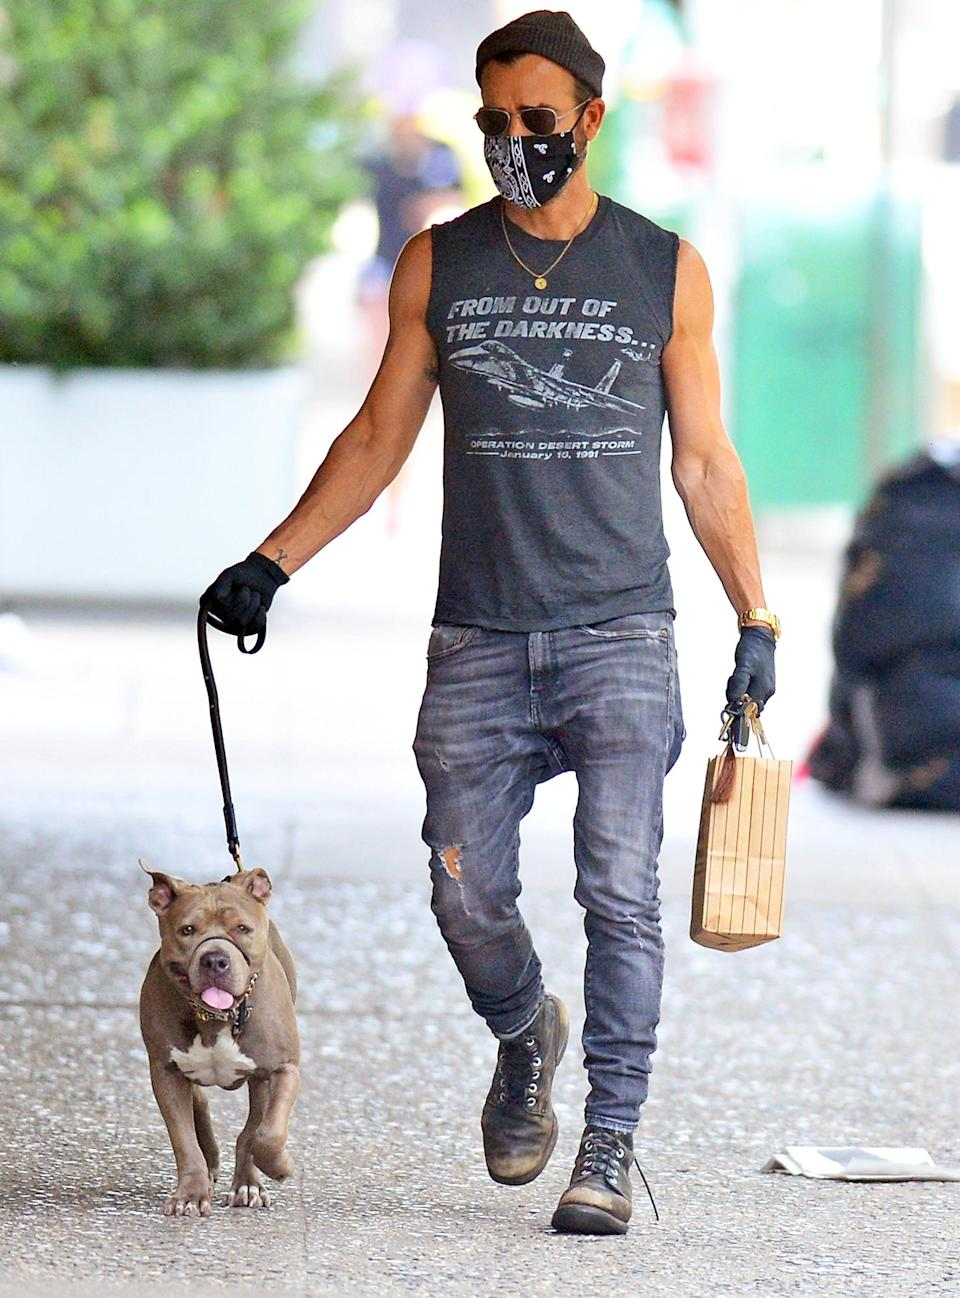 <p>Another day, another dog walk for Justin Theroux, who leads his pup around N.Y.C. on Monday.</p>